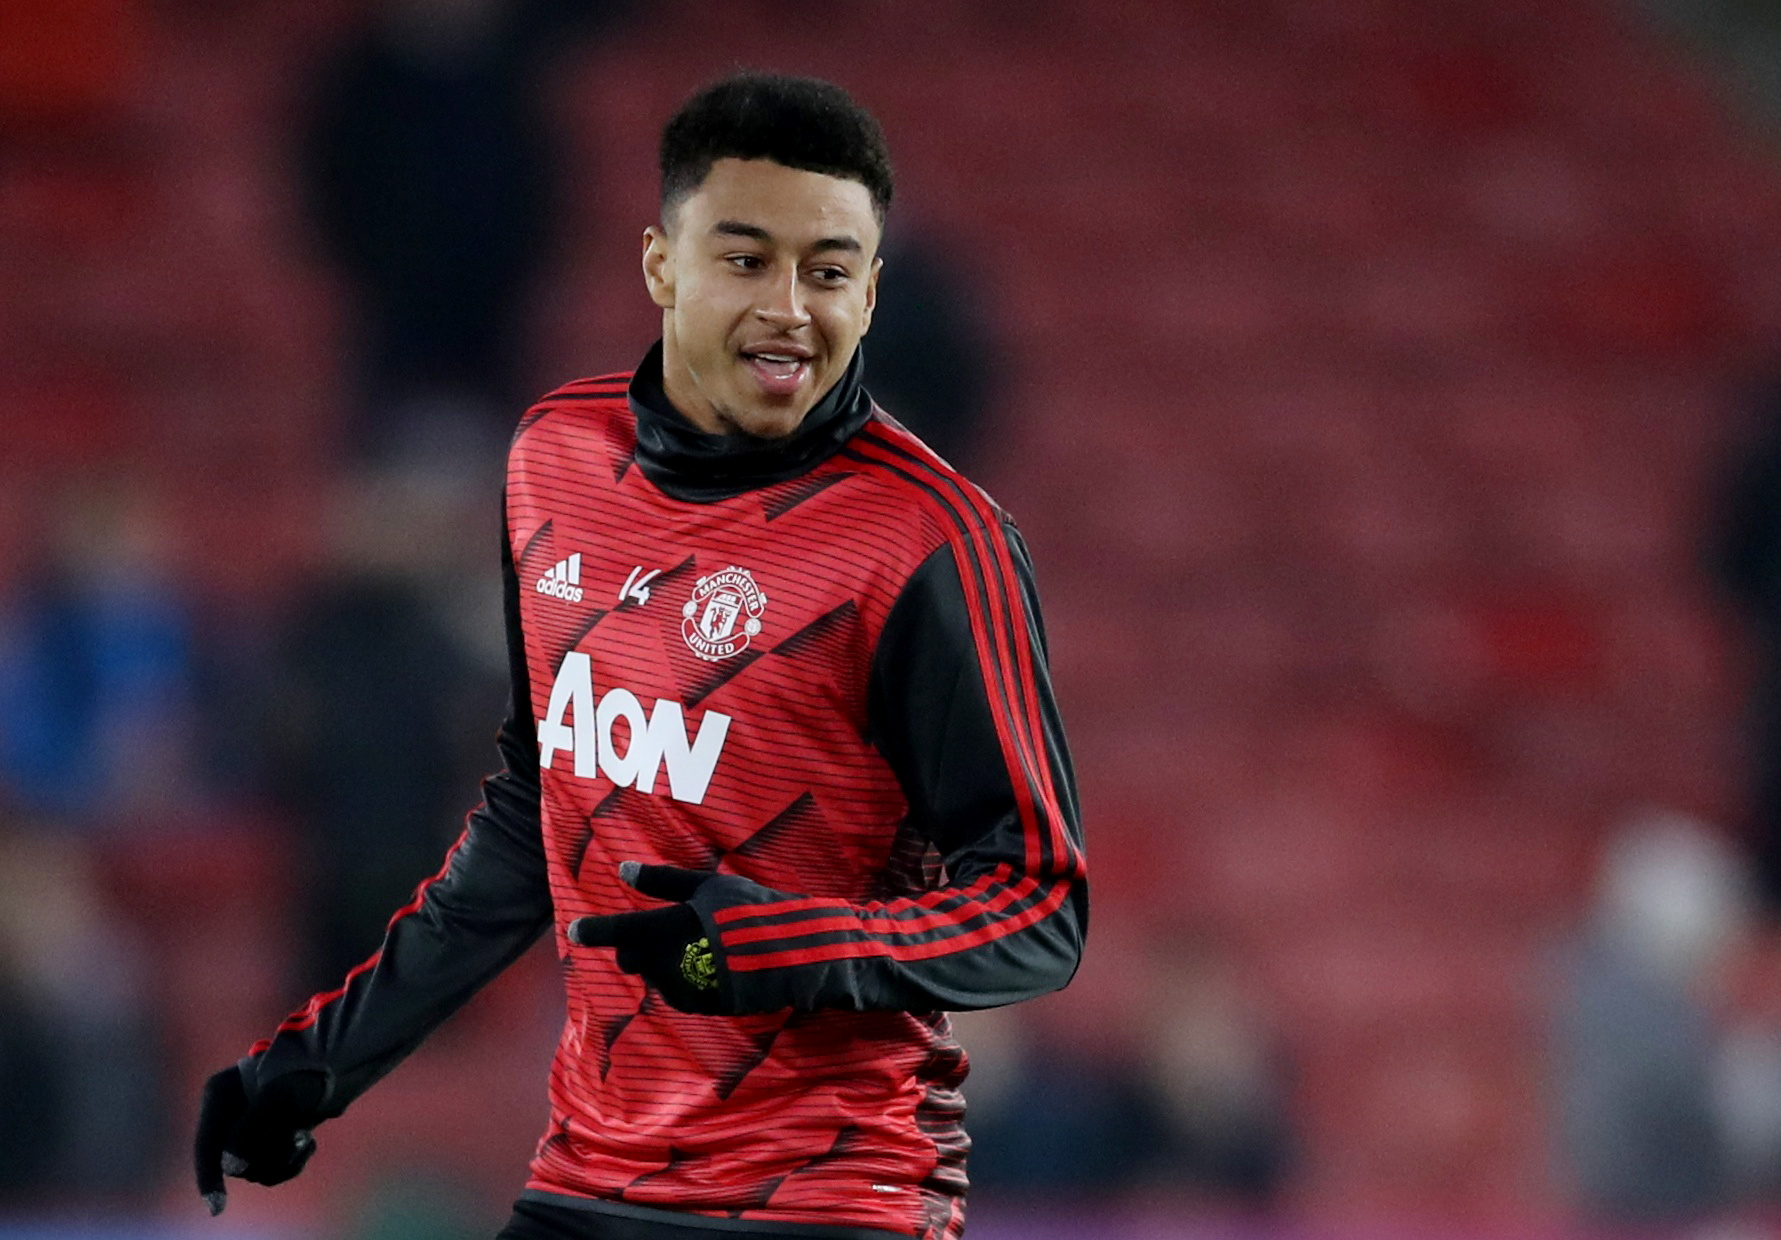 Manchester United star Jesse Lingard reveals he rejected offers to join rivals